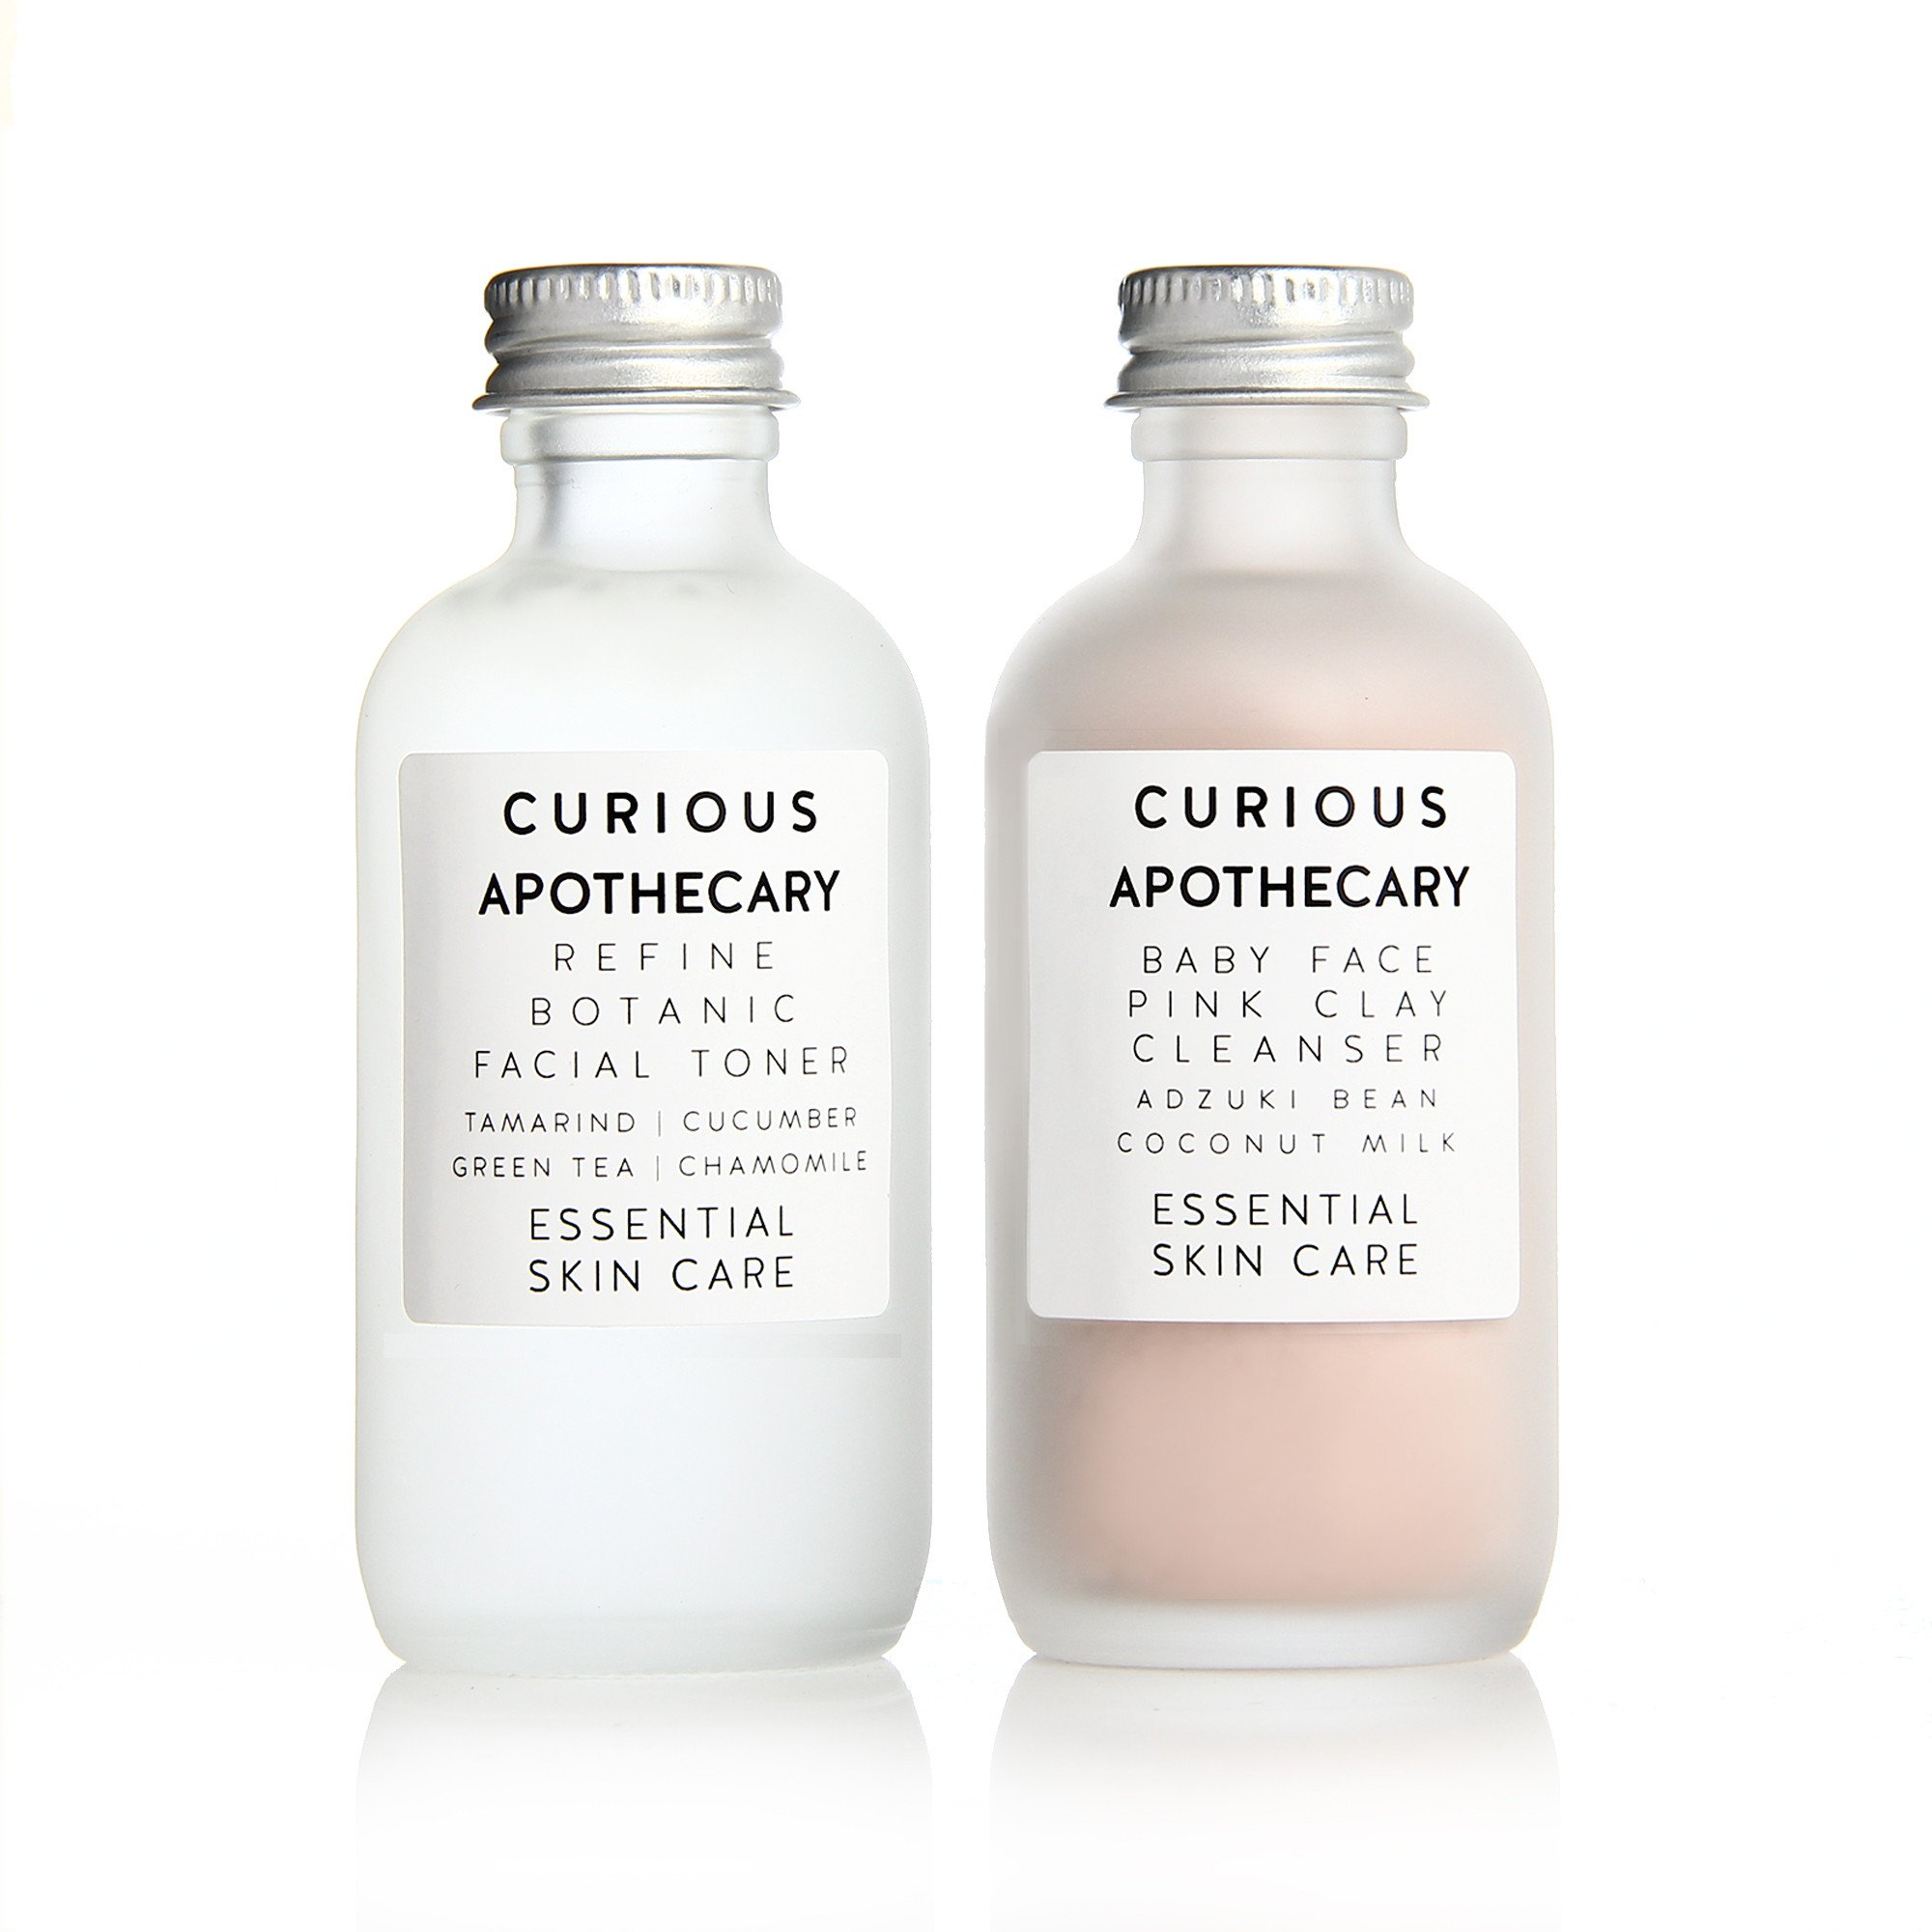 Image of Refine Facial Toner and Baby Face Pink Clay Cleanser Set by Curious Apothecary